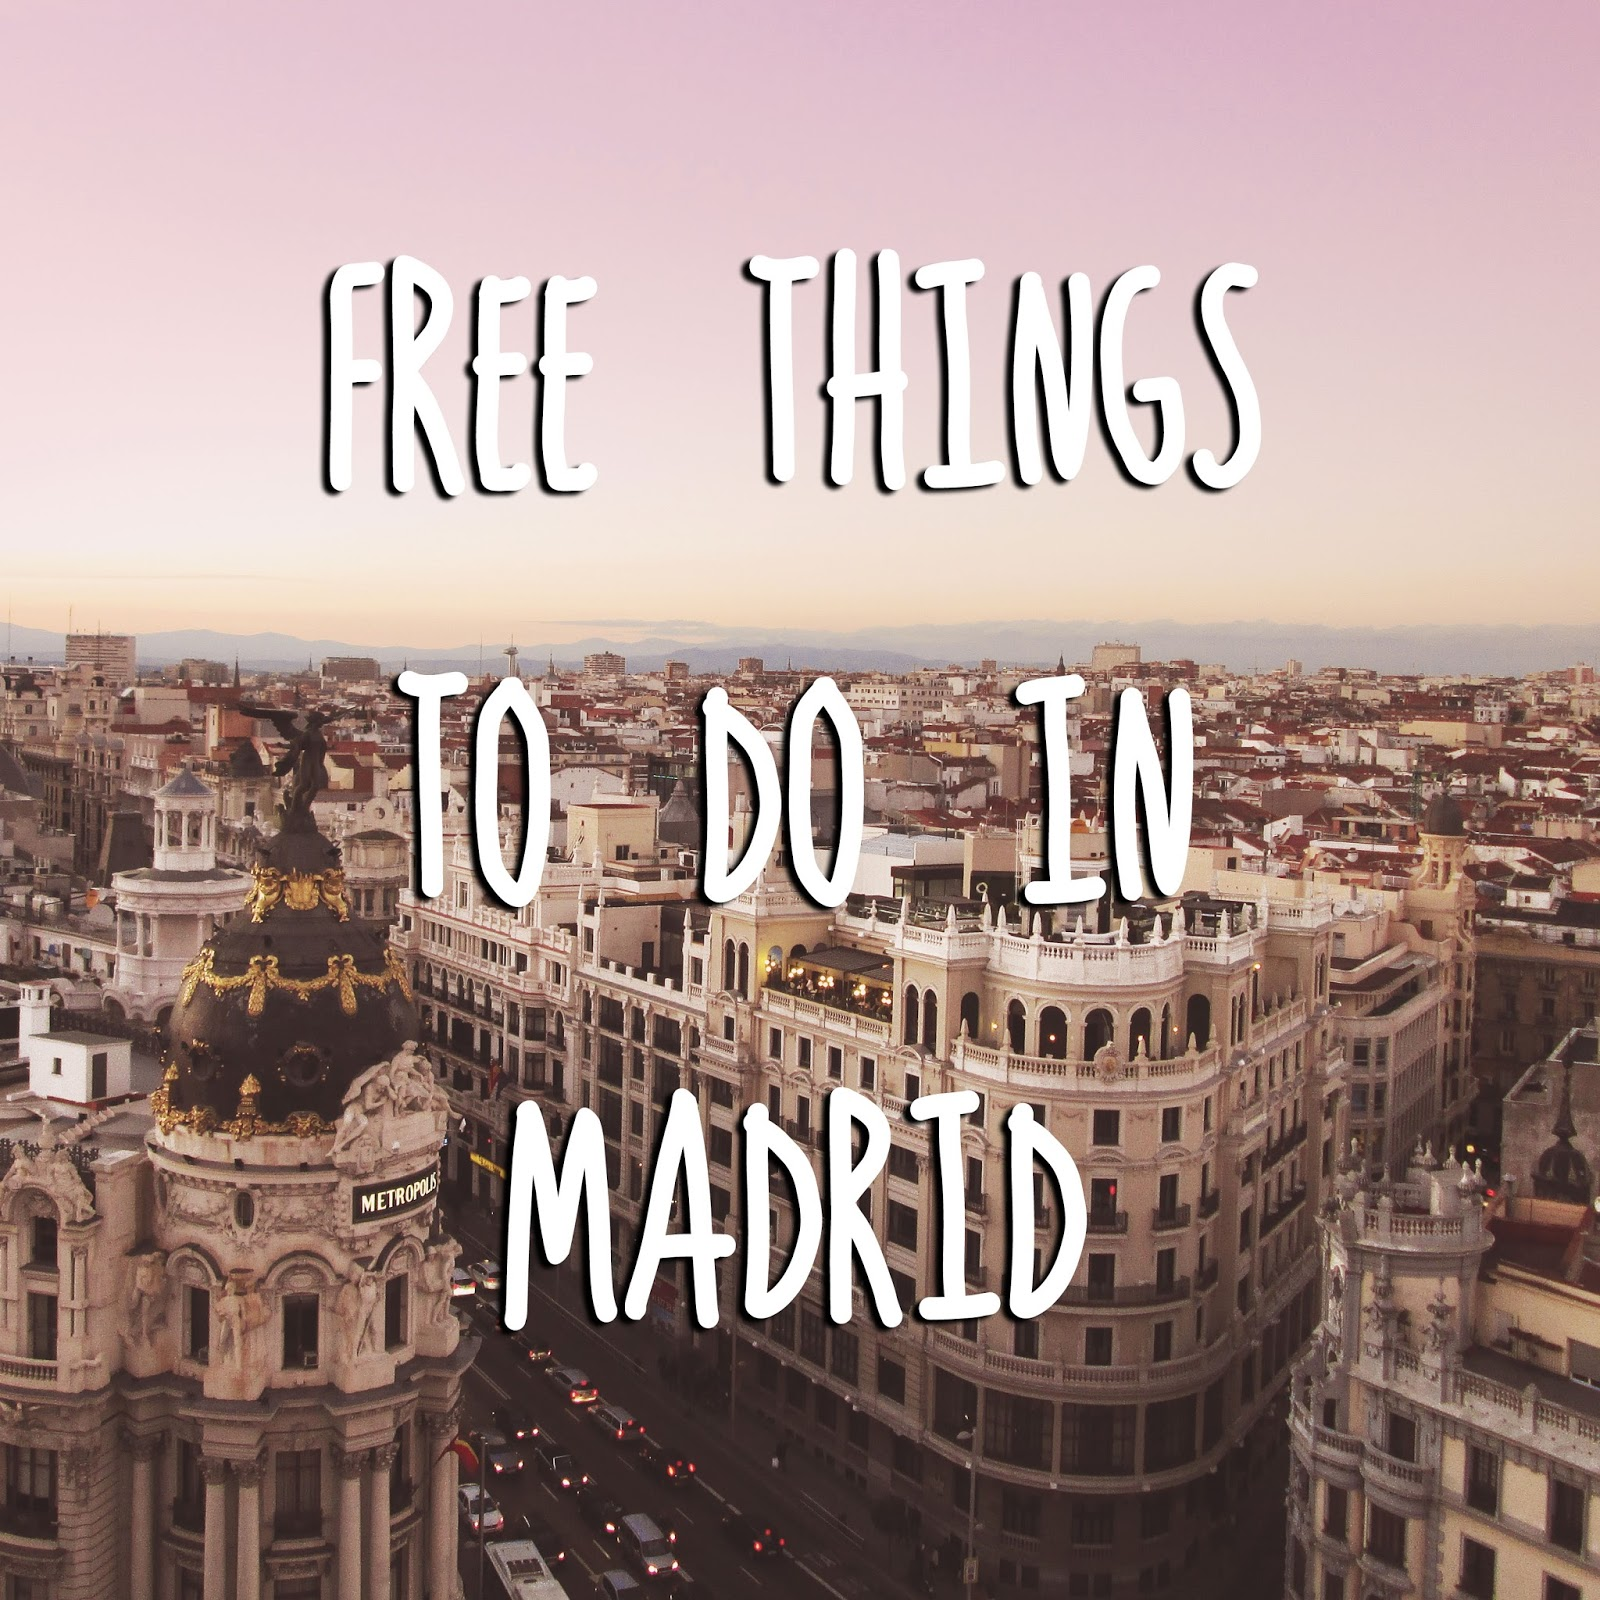 http://www.theartofcheaptravel.com/2014/08/madrid-for-free.html